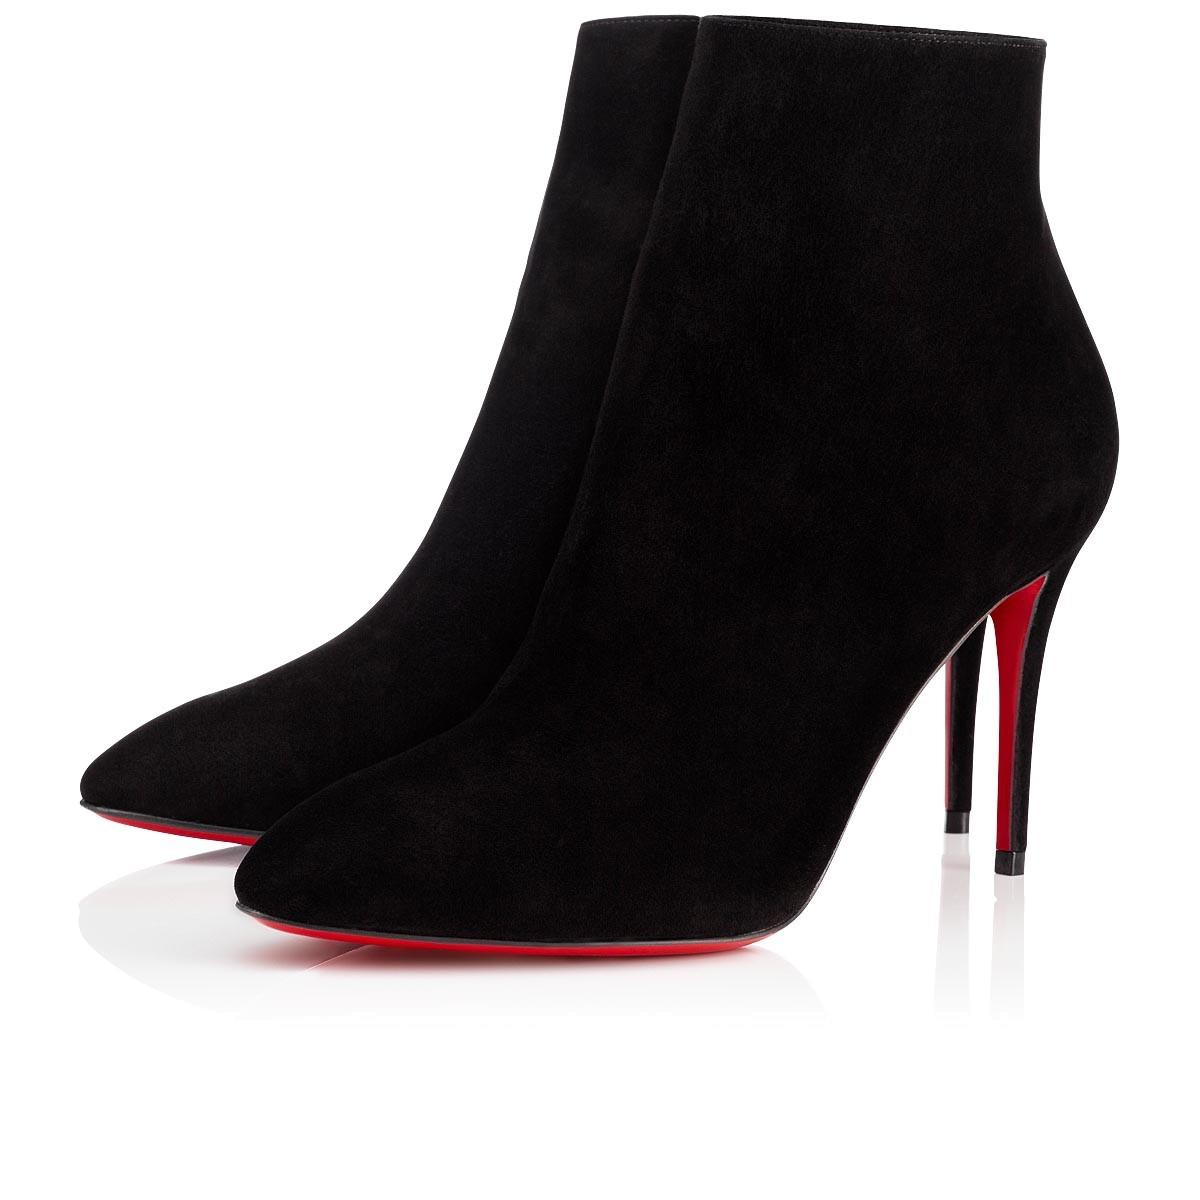 Christian Louboutin Black New Eloise 85 Suede 37 Boots/Booties Size US 7 Regular (M, B)